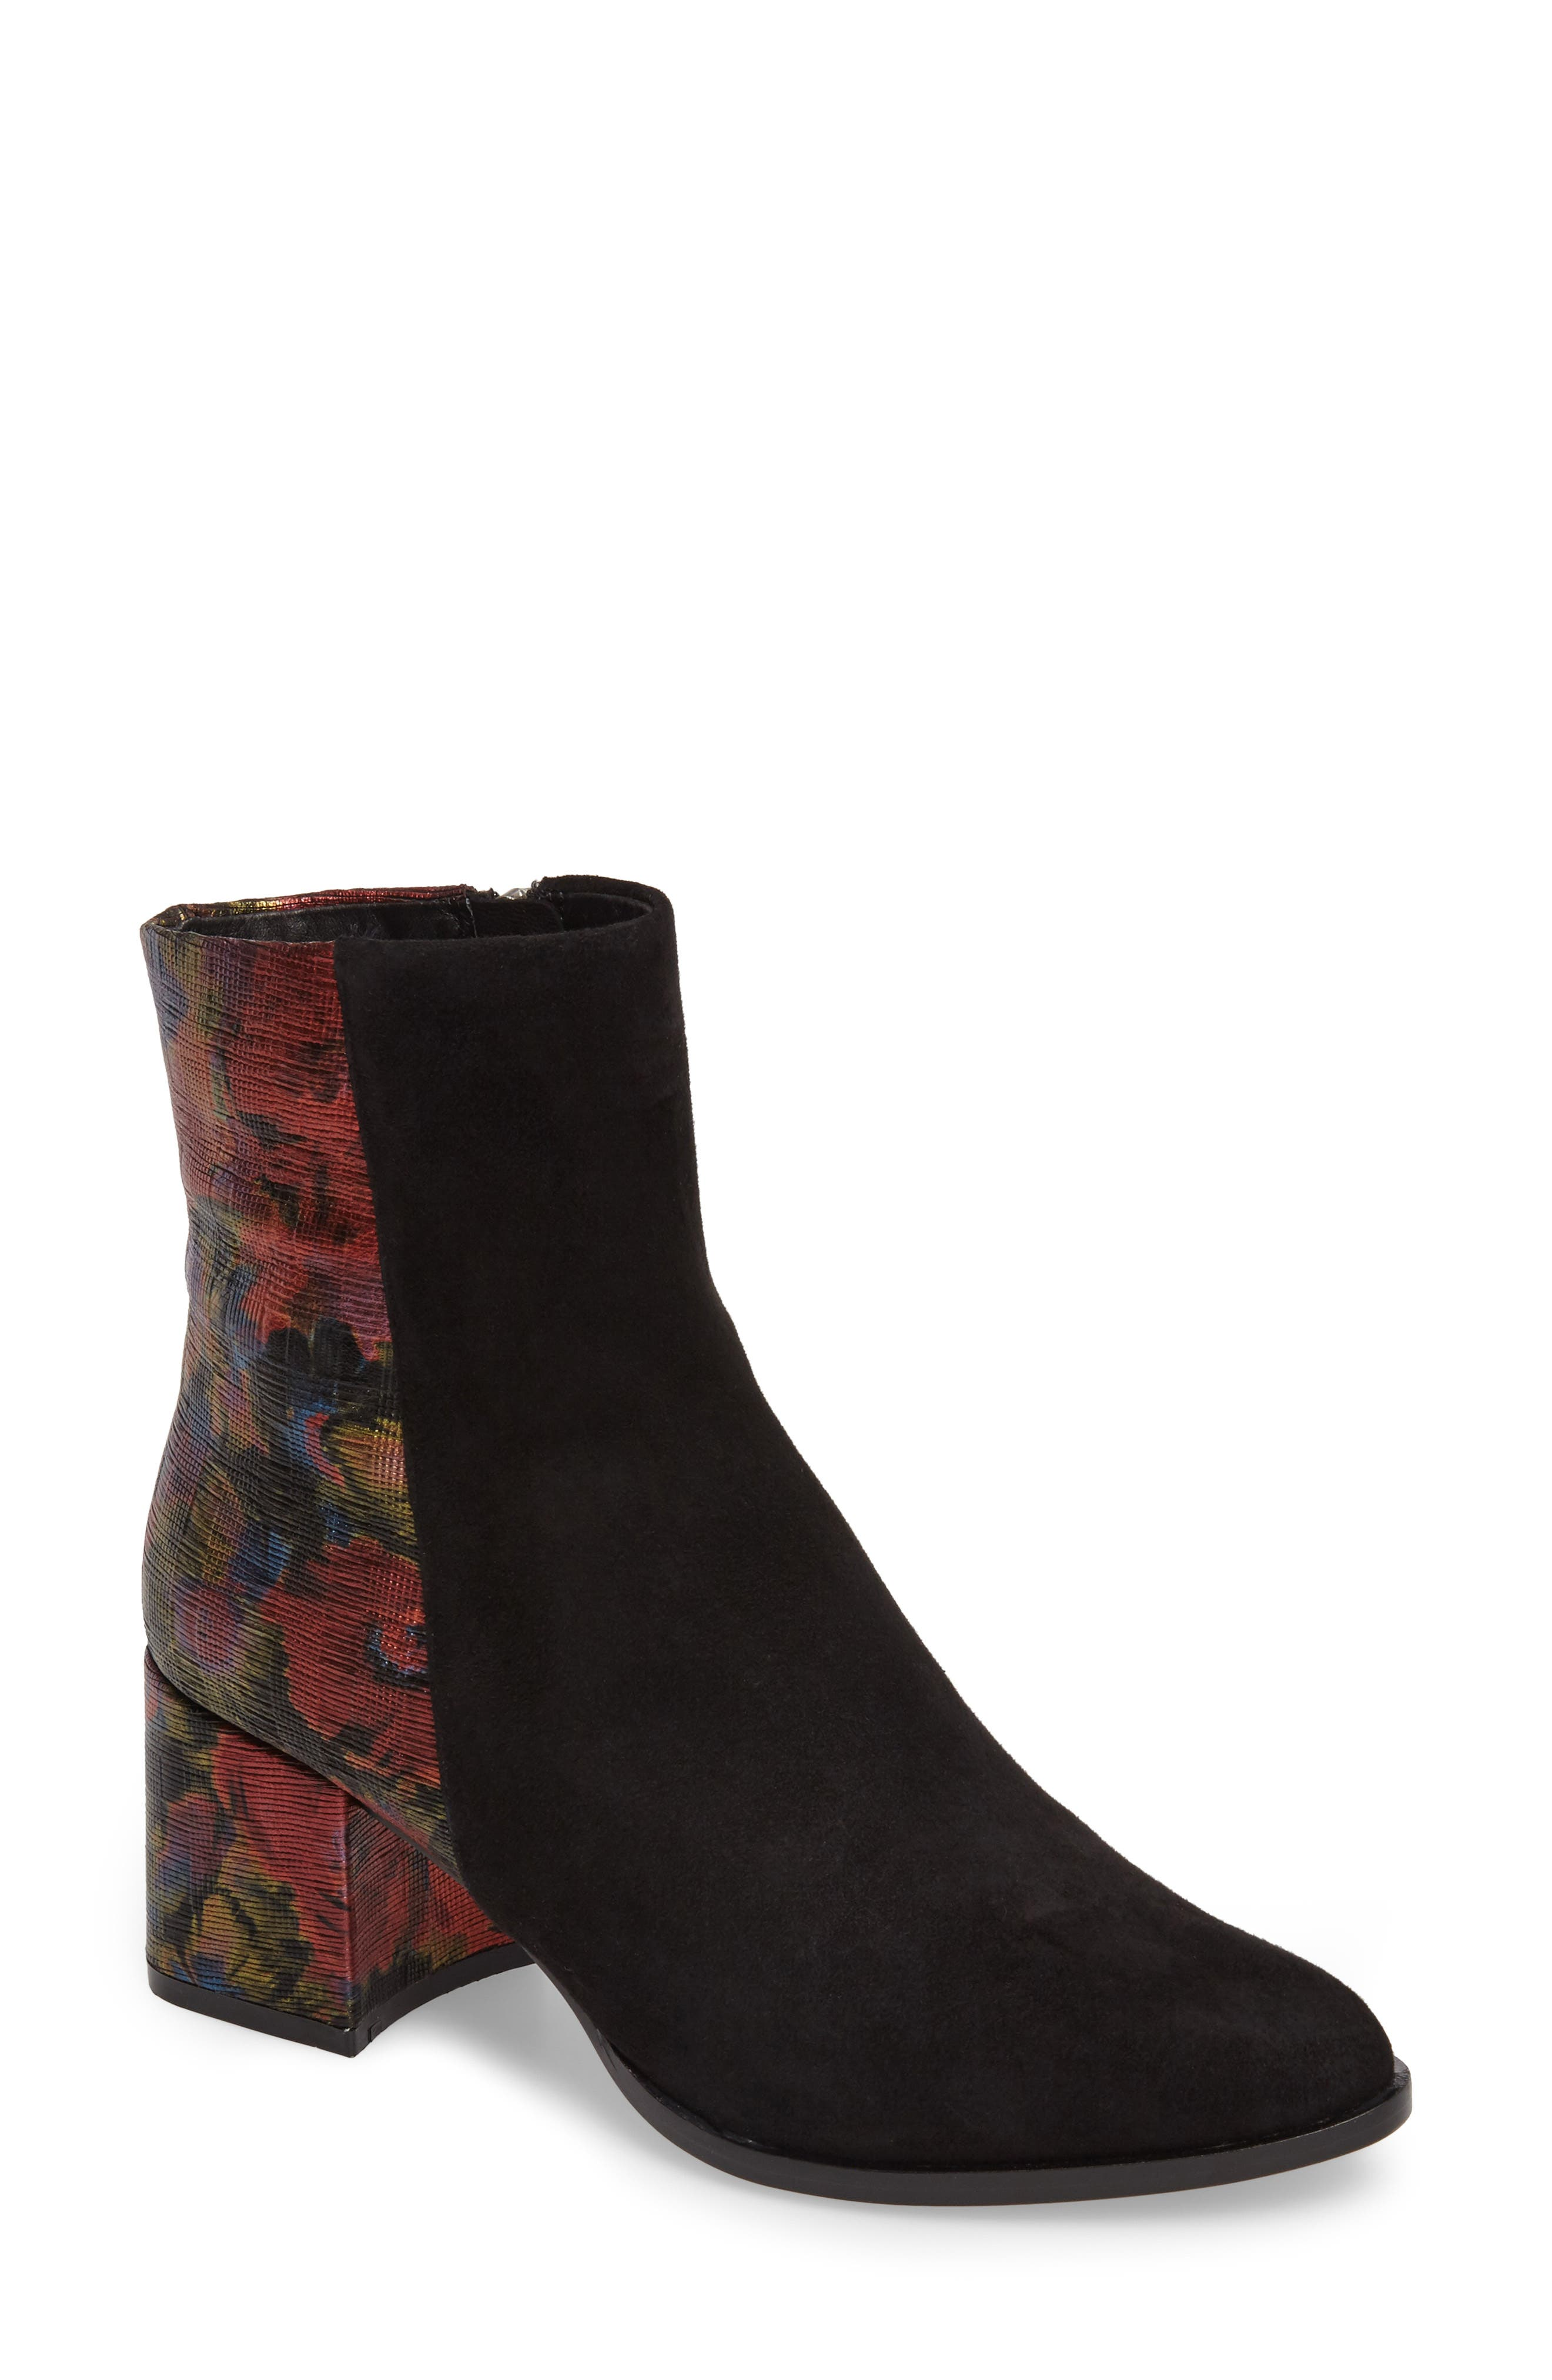 Brady Embellished Boot,                             Main thumbnail 1, color,                             007